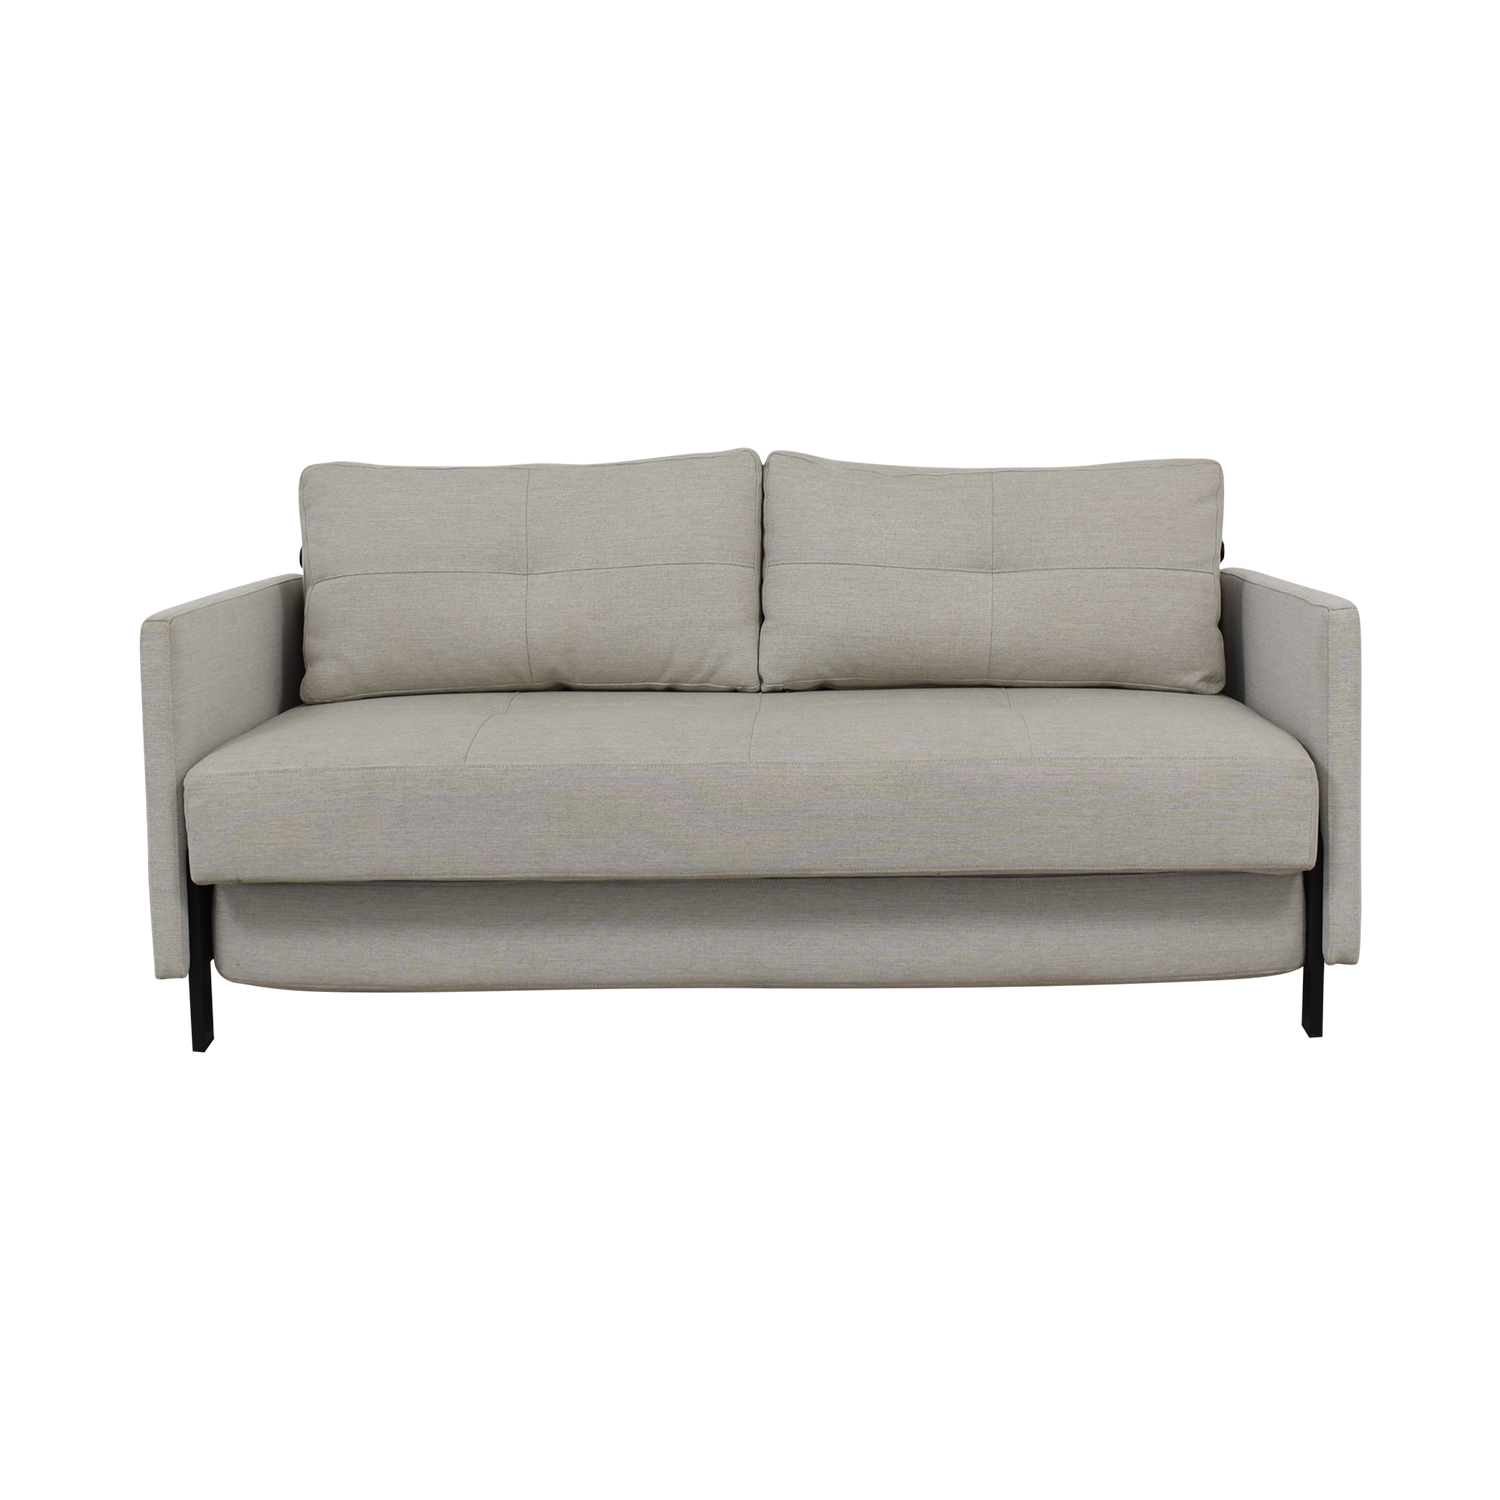 Innovation Living Convertible Sofa sale